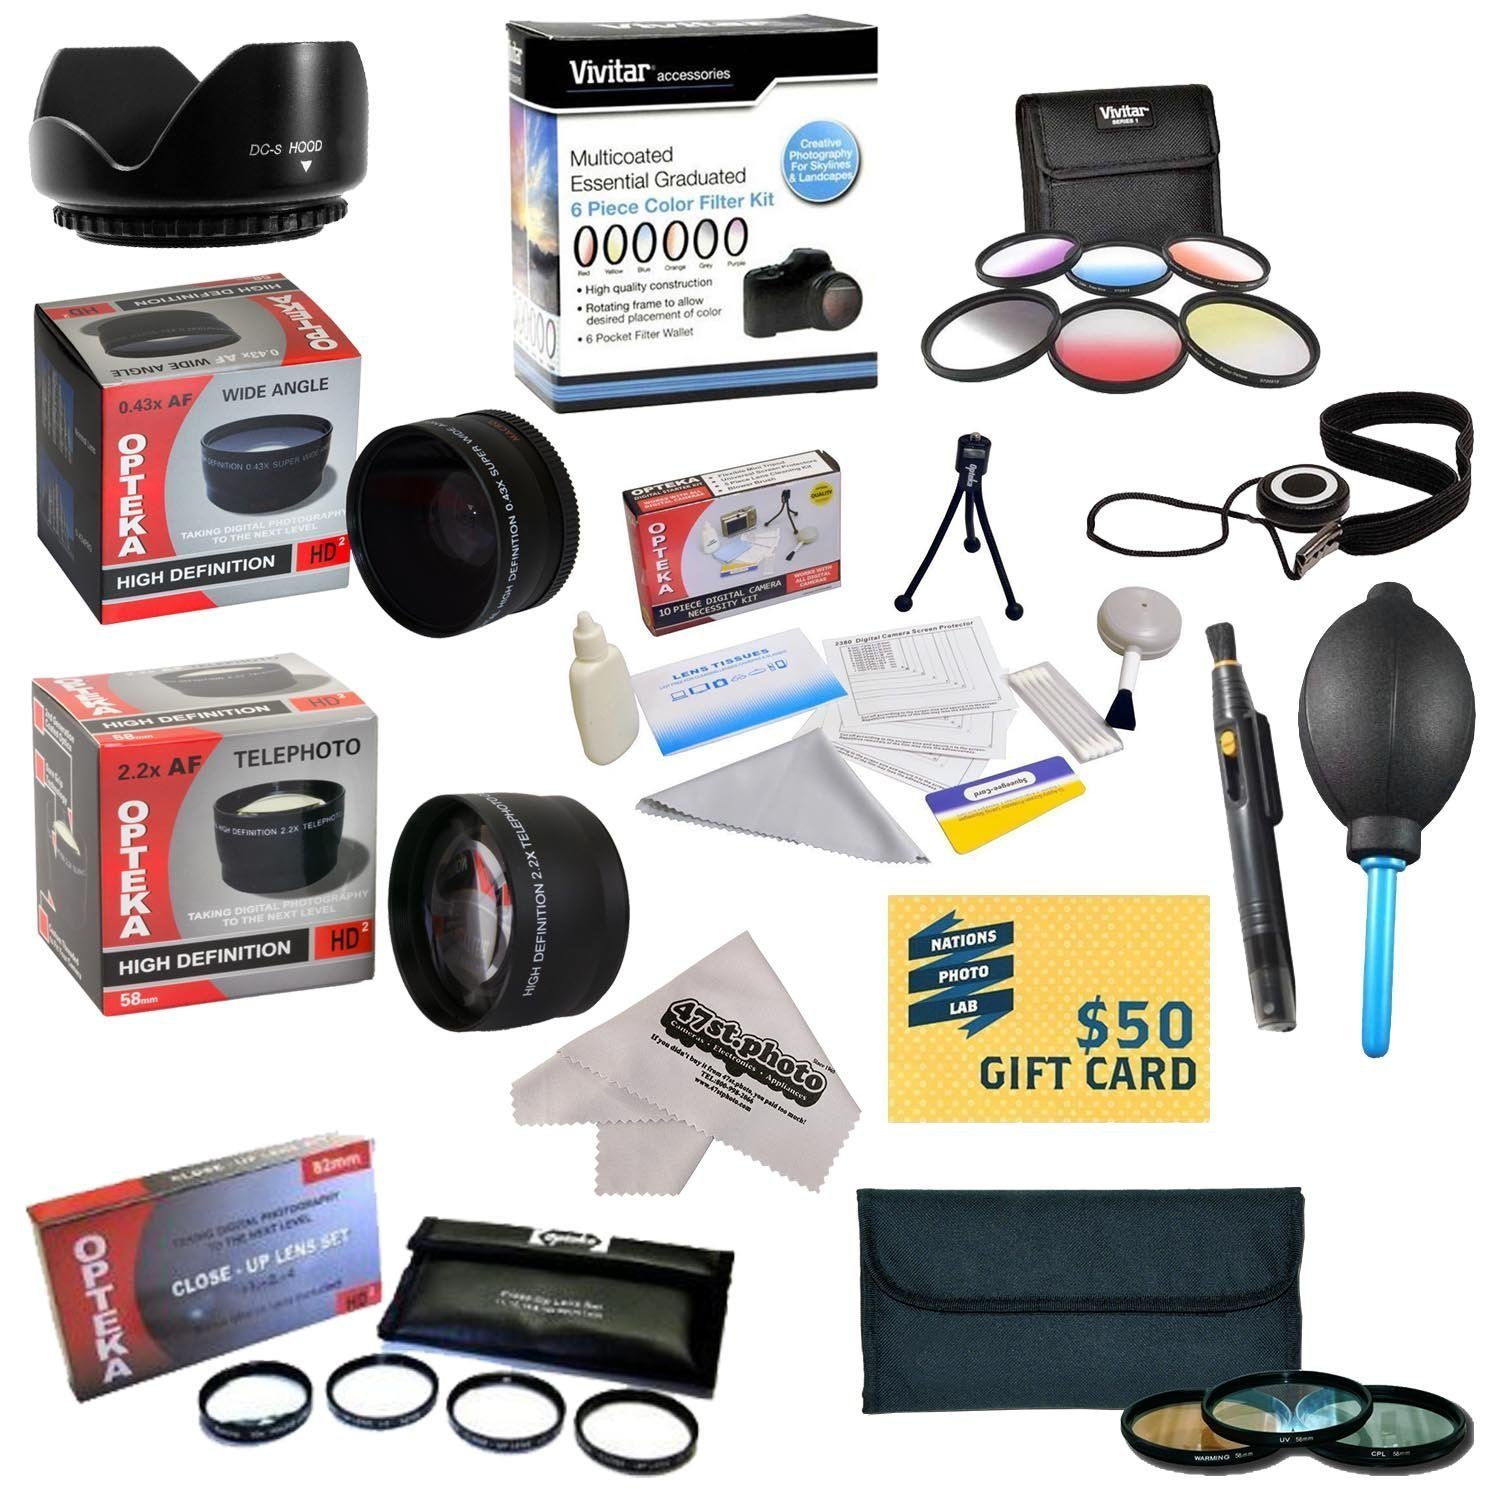 CANON EOS REBEL T5I T4I SL1 T3 T3i 60D XS i XT XTI XS 15 Piece Kit with 0.20X Super Wide Angle Fisheye lens, 5 PC Close-Up Set, 2.2x Telephoto Lens, 3 Piece Filter Kit, Microfiber Cloth, $50 Gift Card